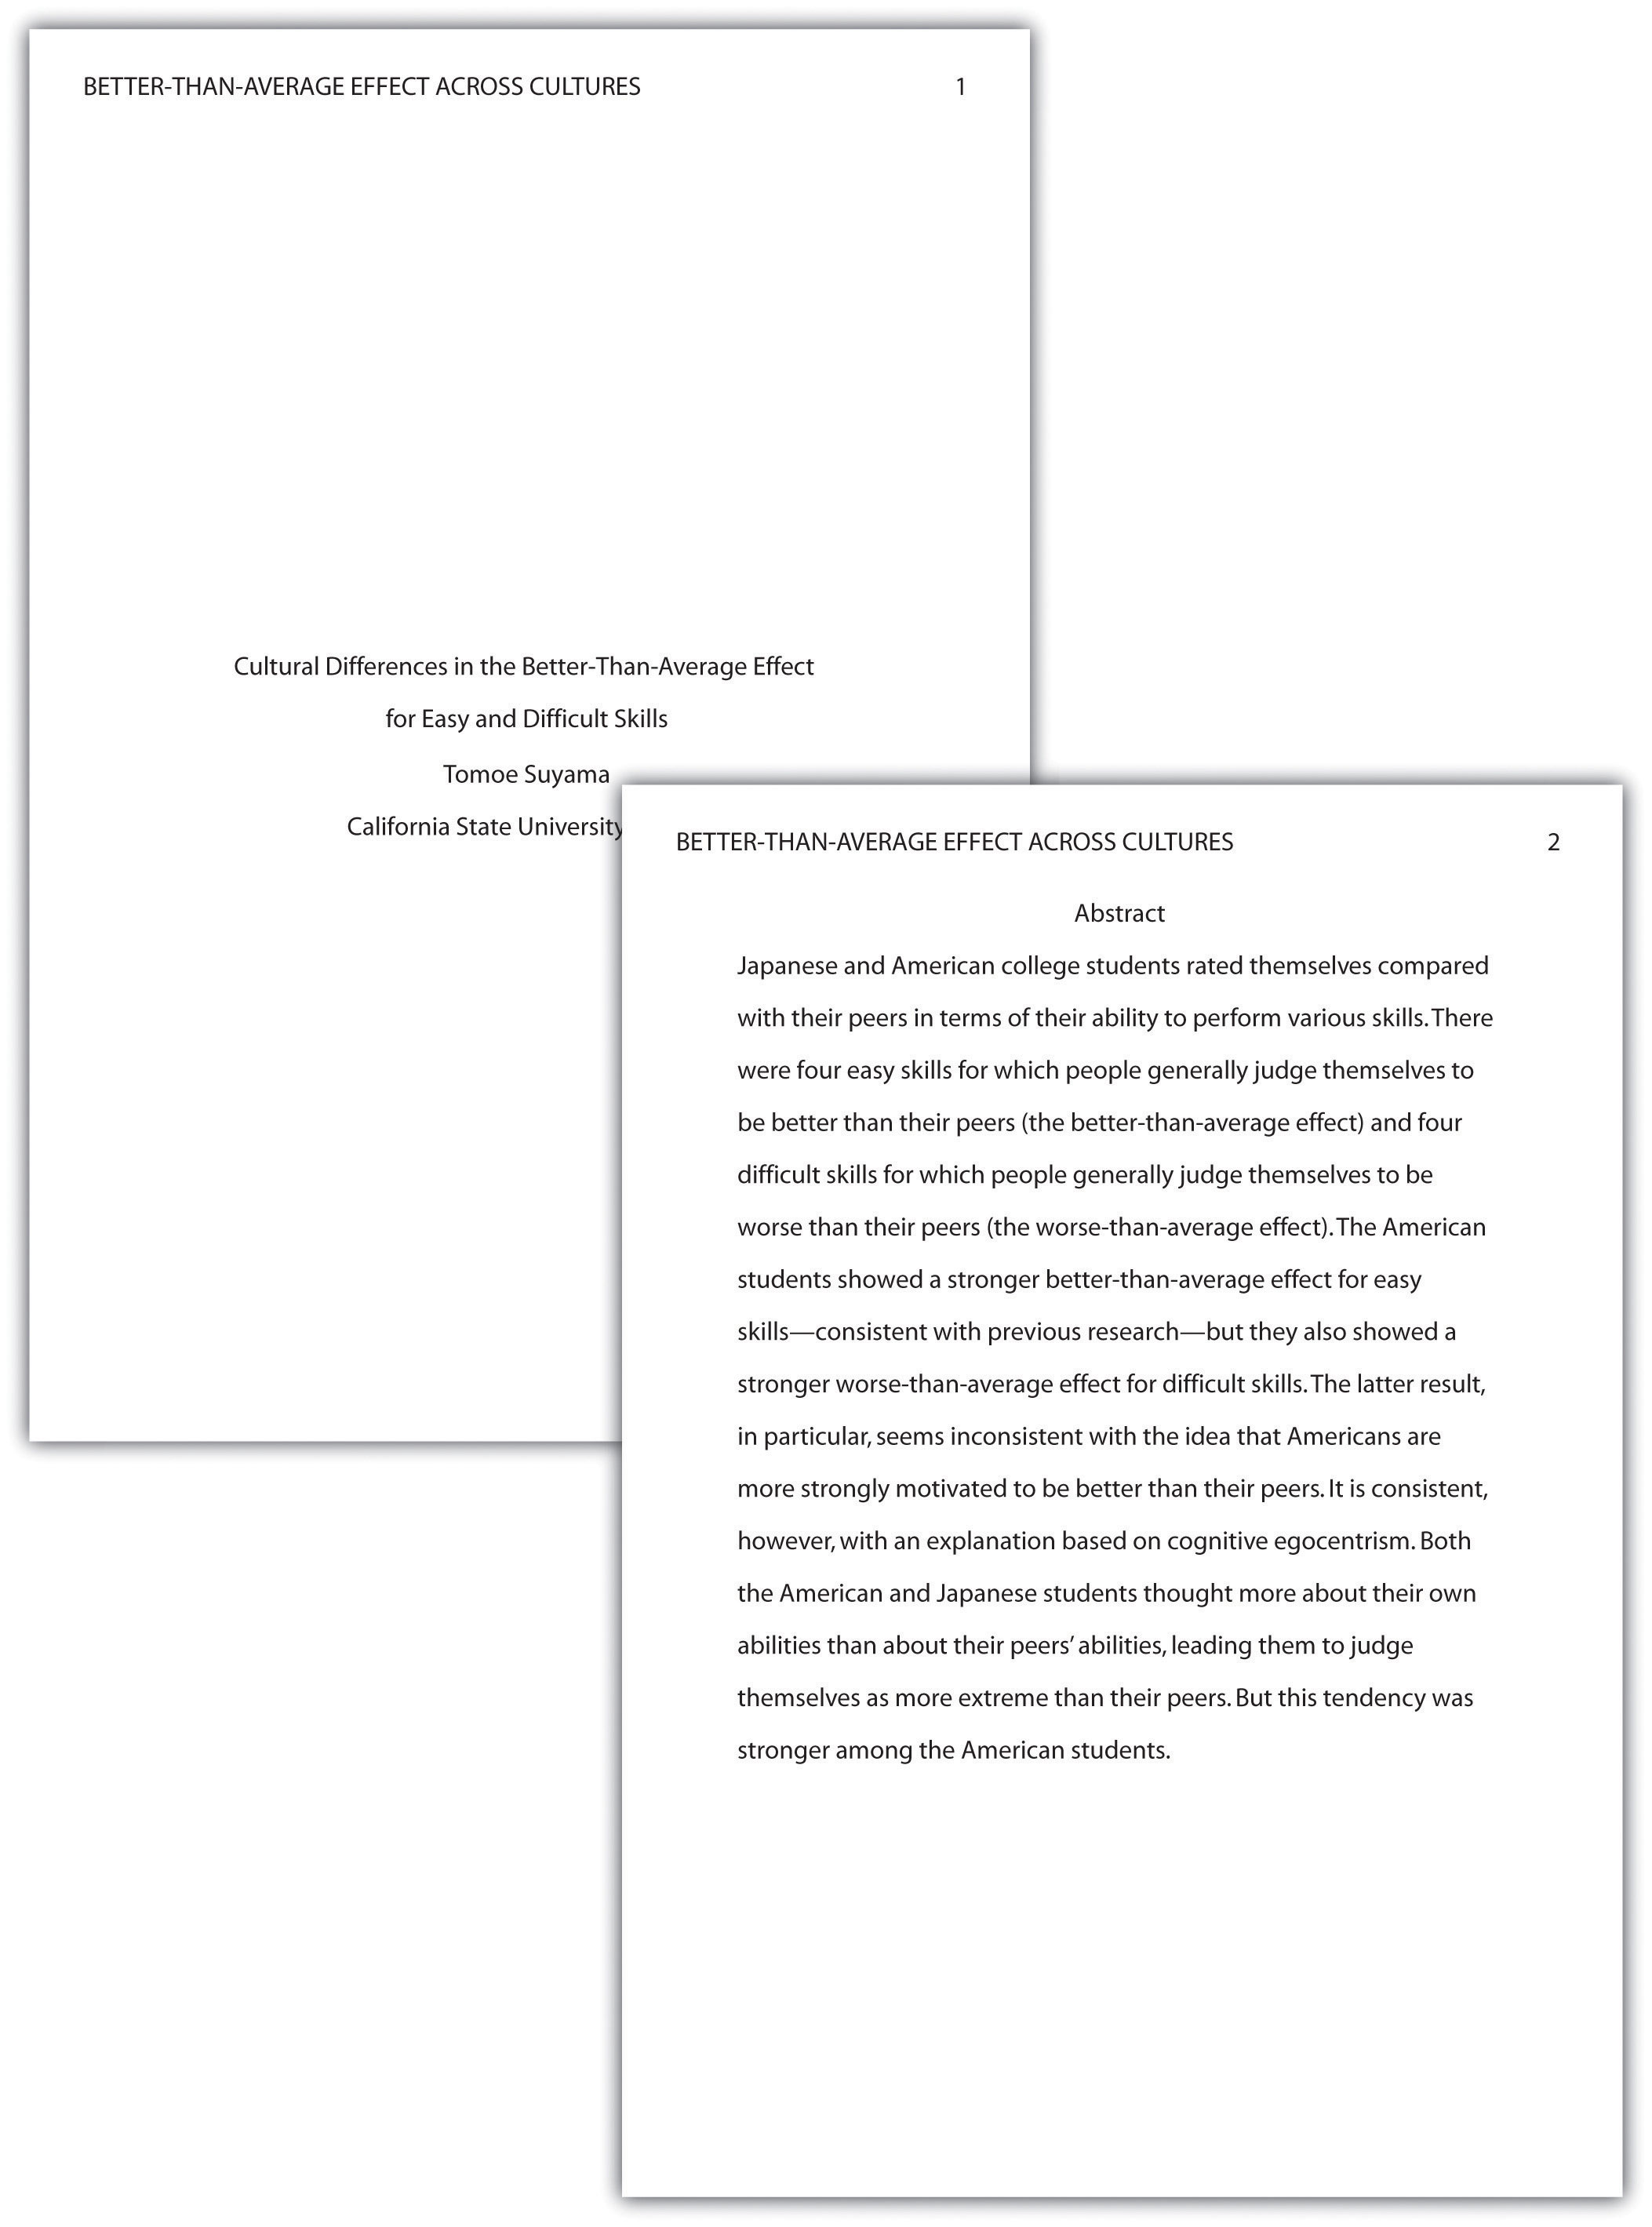 apa style for cover page of research paper The cover page is different from the headers on the rest of the paper only the cover page header a sample paper in apa style research suggests that when more.